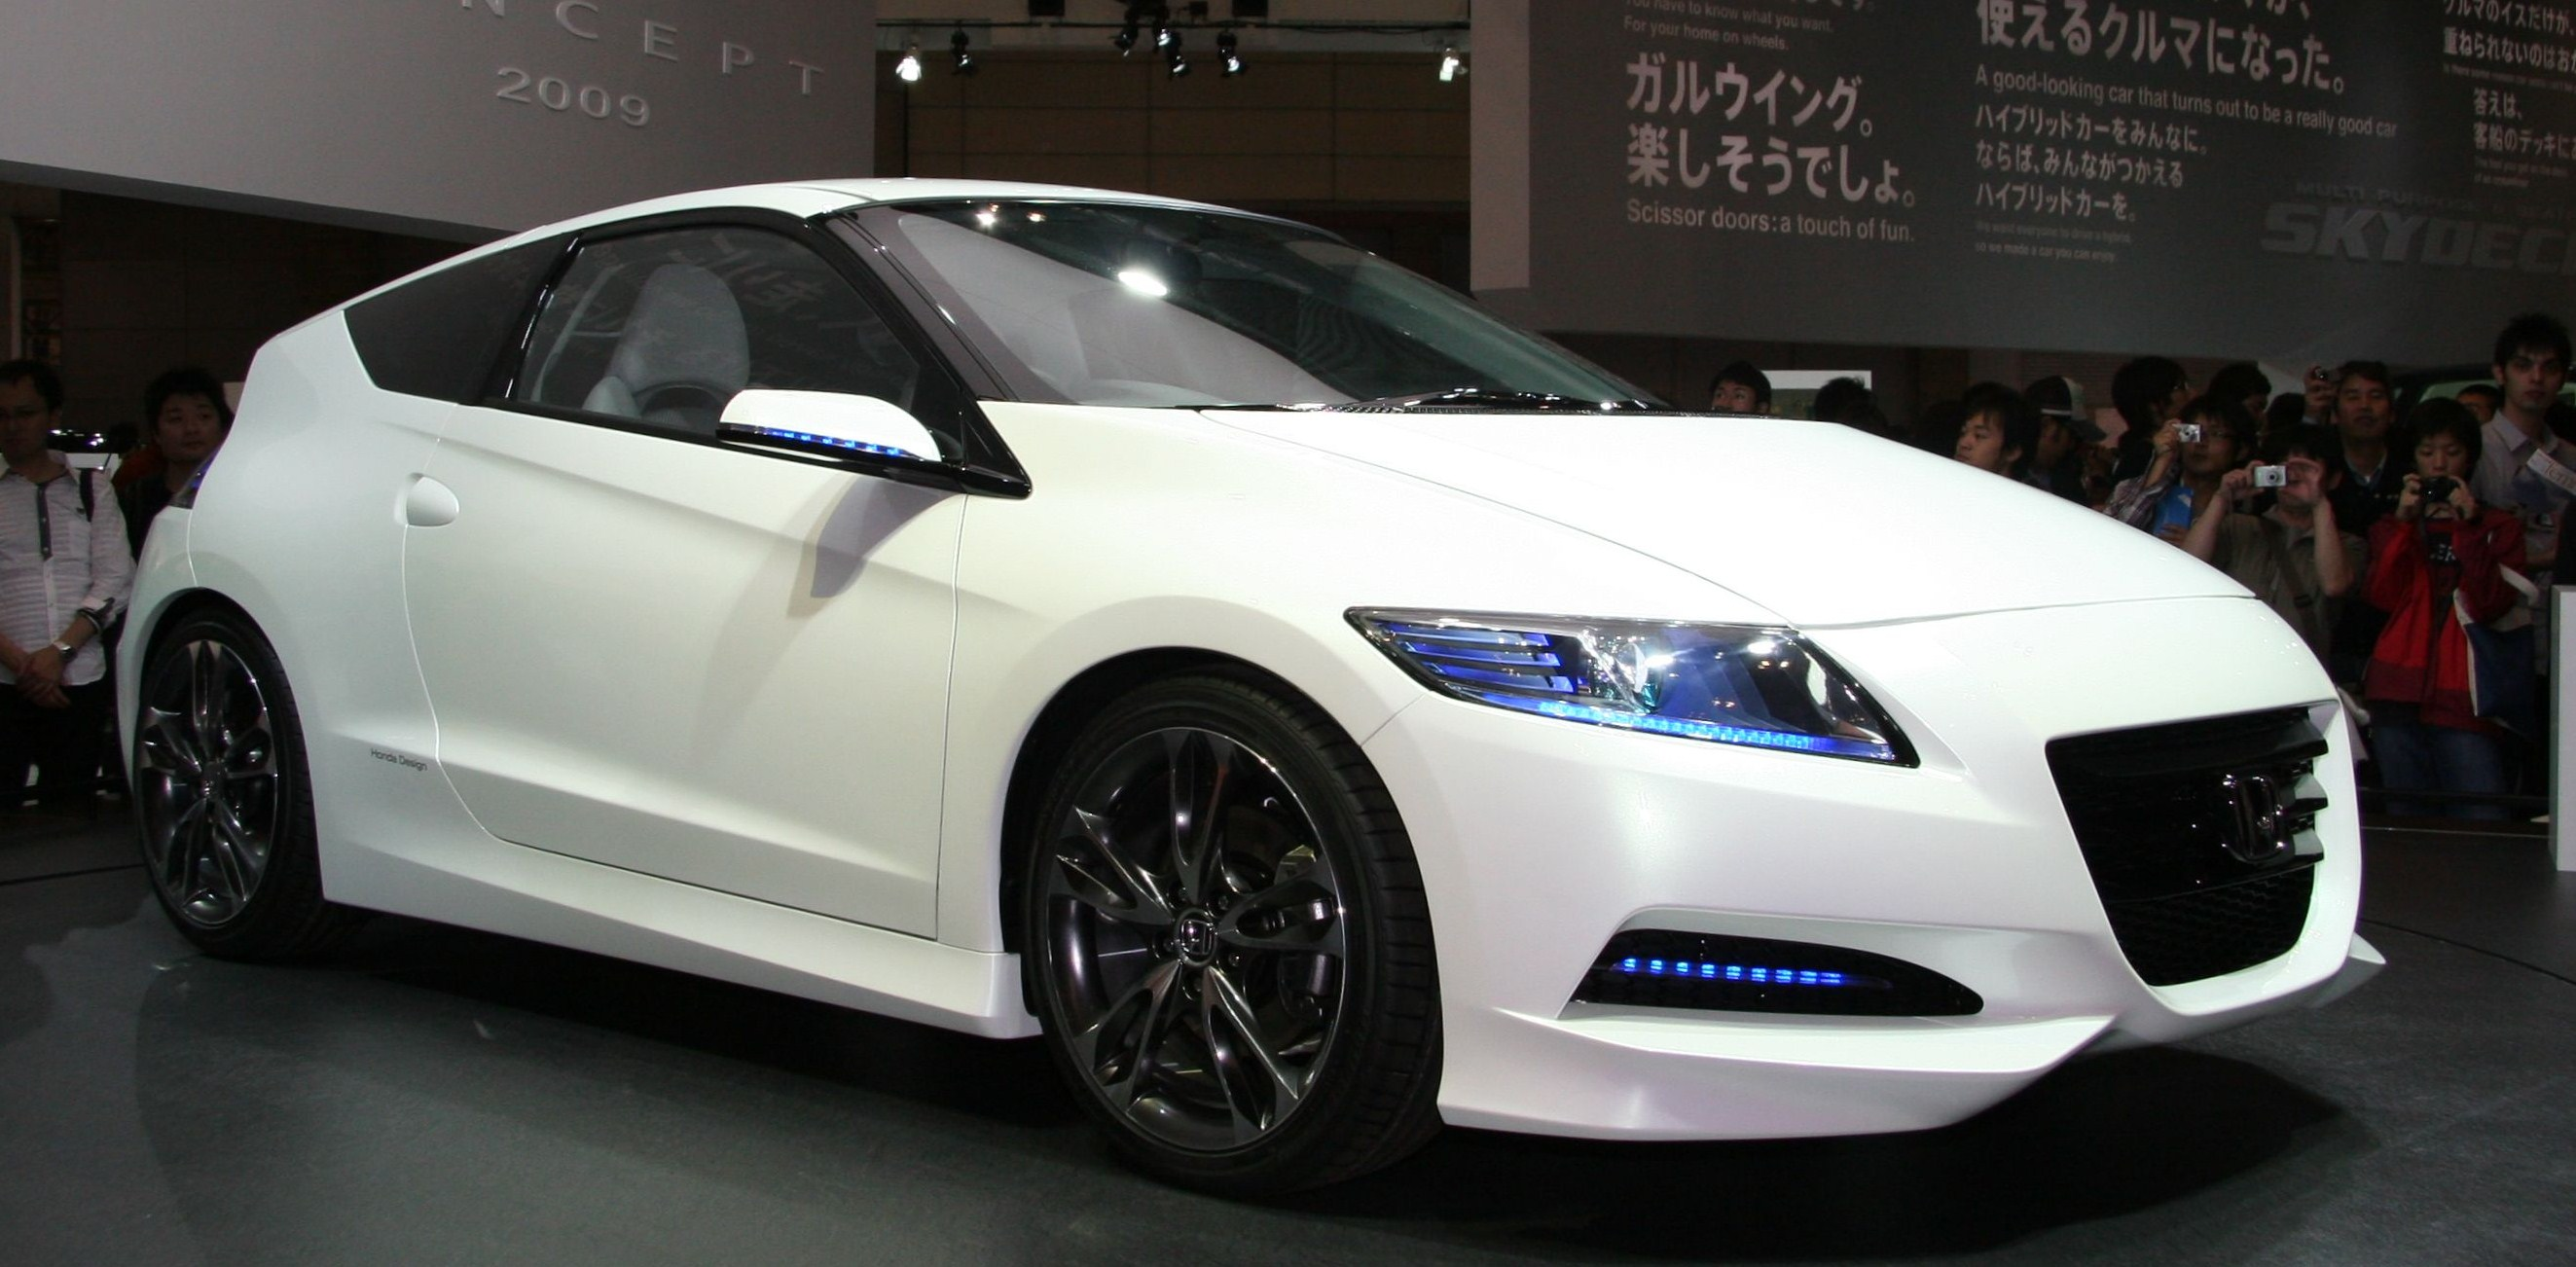 file honda cr z concept wikimedia commons. Black Bedroom Furniture Sets. Home Design Ideas